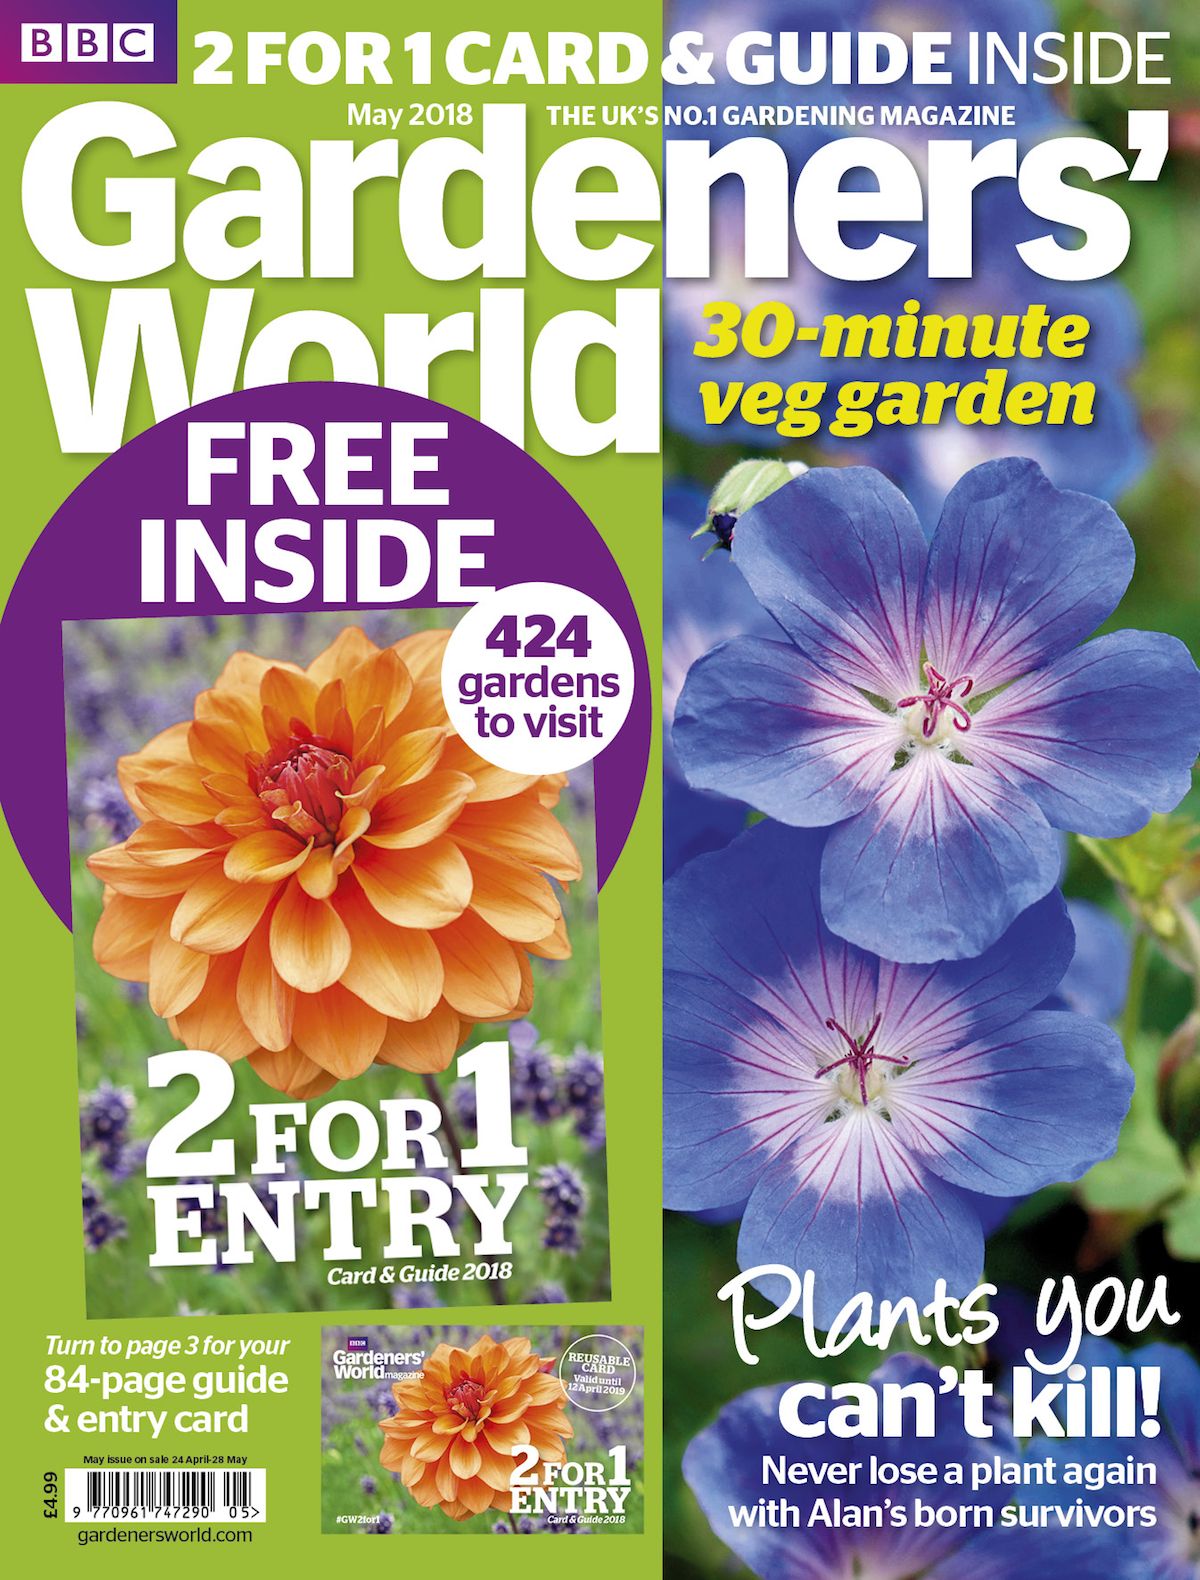 BBC Gardeners' World's May issue becomes the biggest revenue